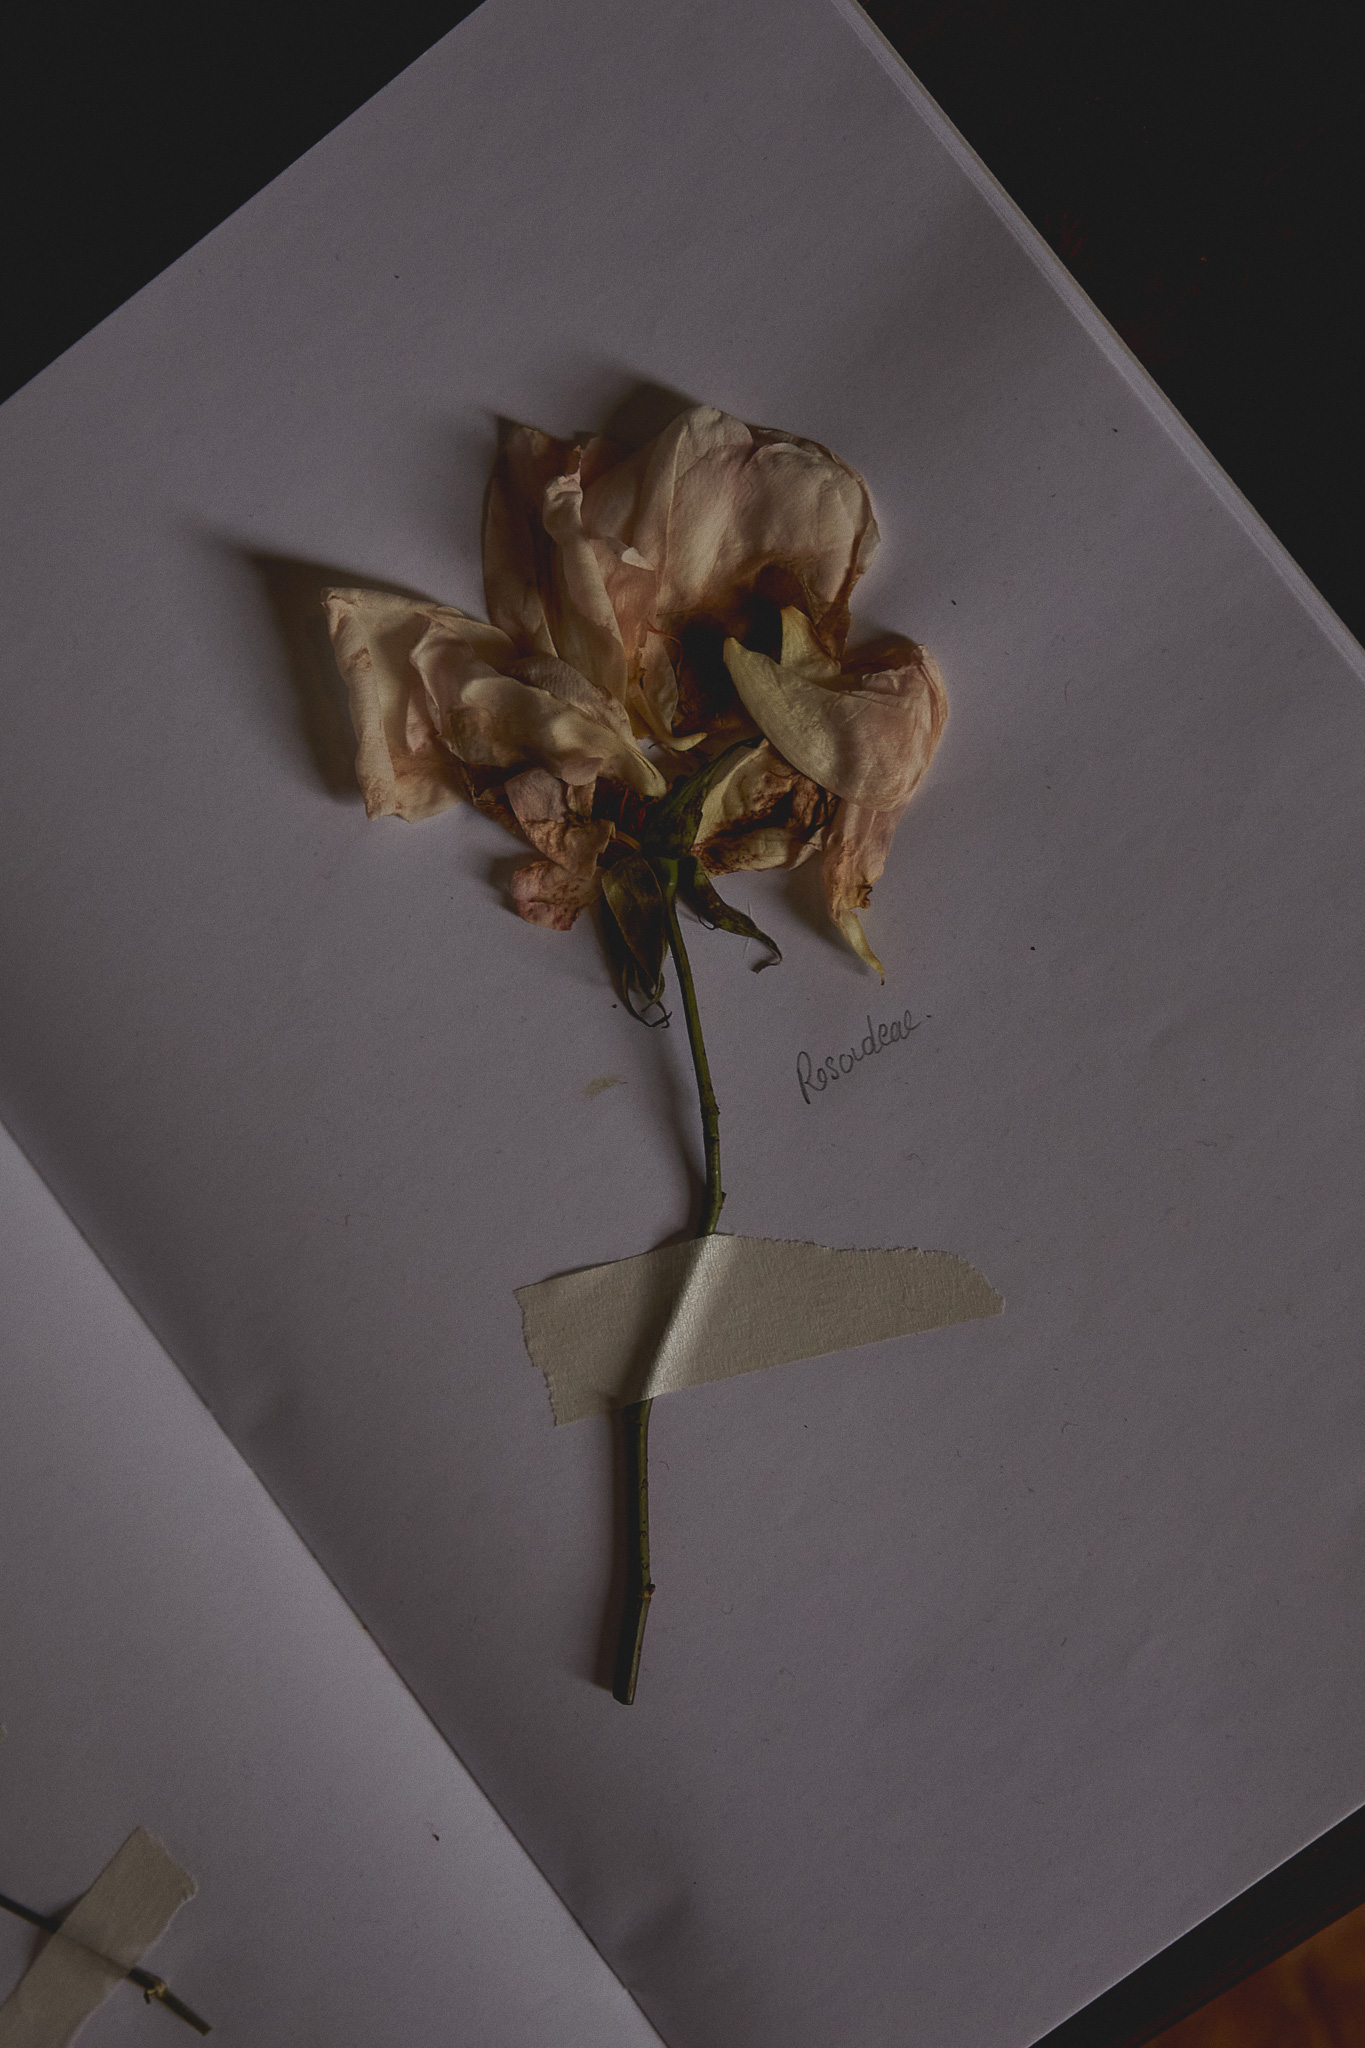 pressed rose flower by Ivana Martyn-zyznikow